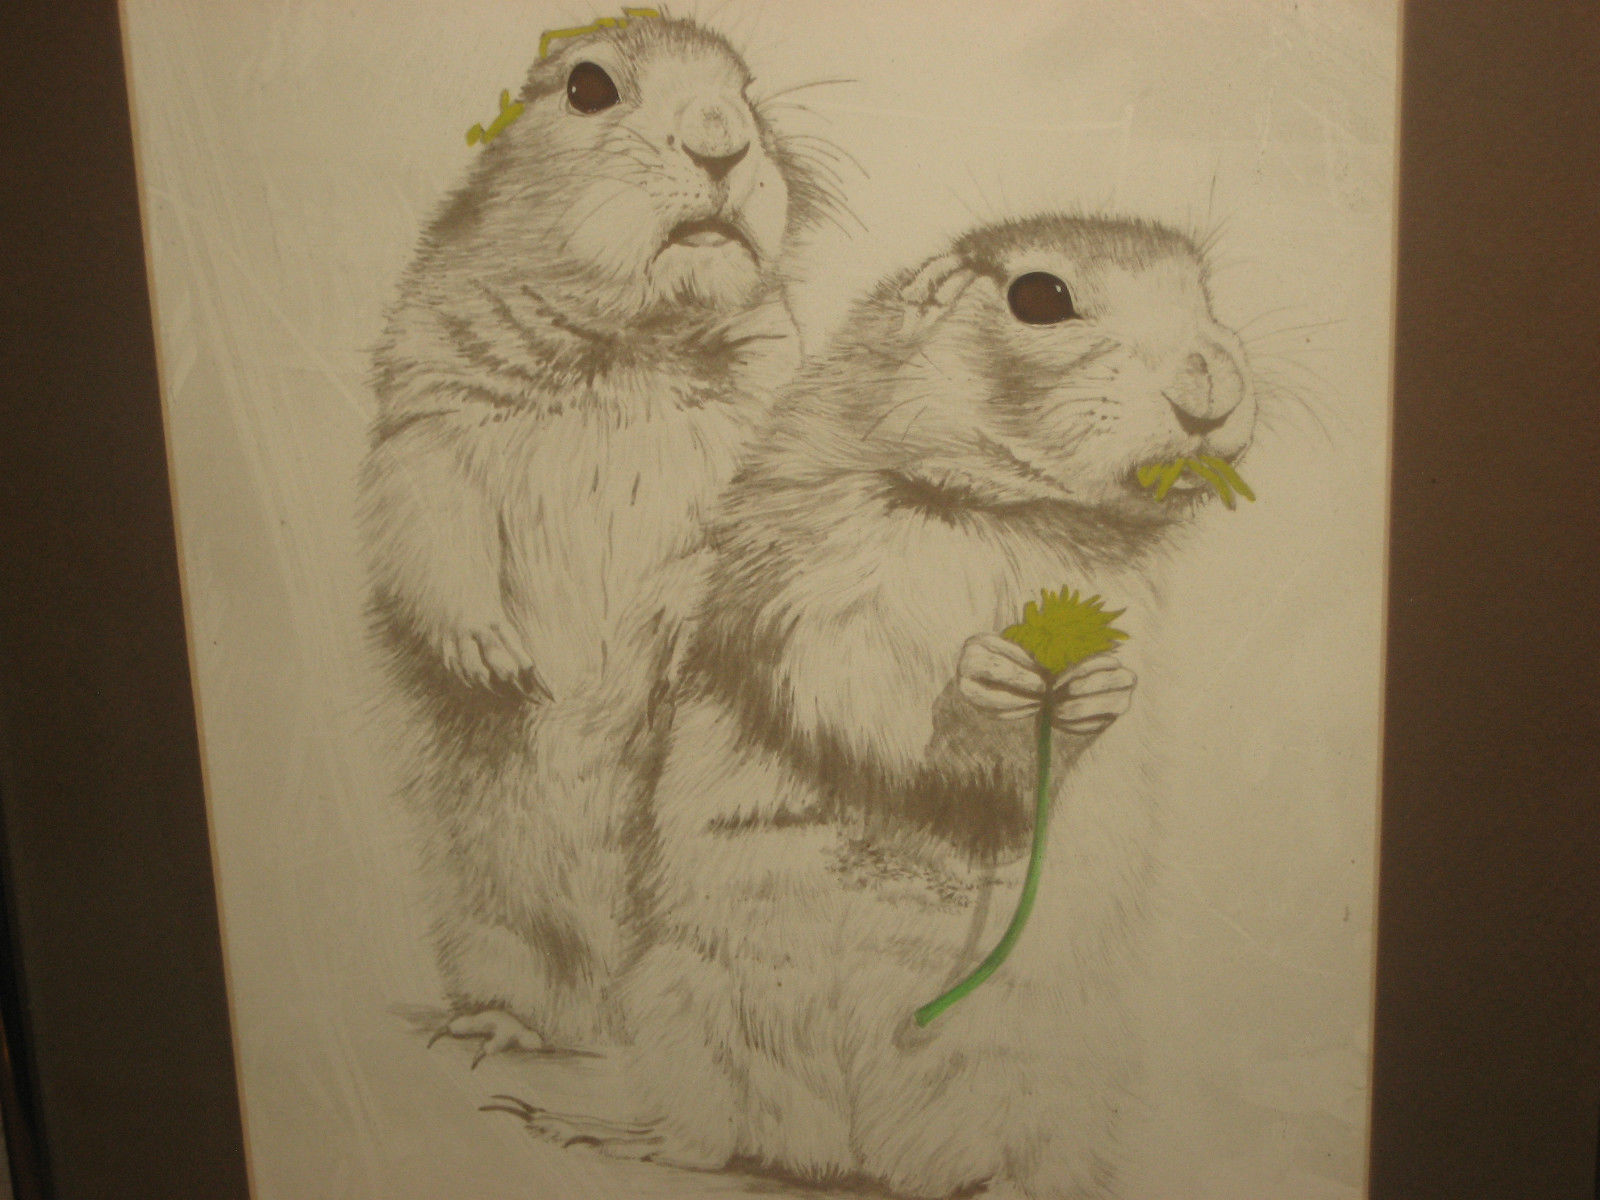 PRAIRIE DOGS BY LINDA MATUSICH SIGNED #'D FRAMED LITHOGRAPH